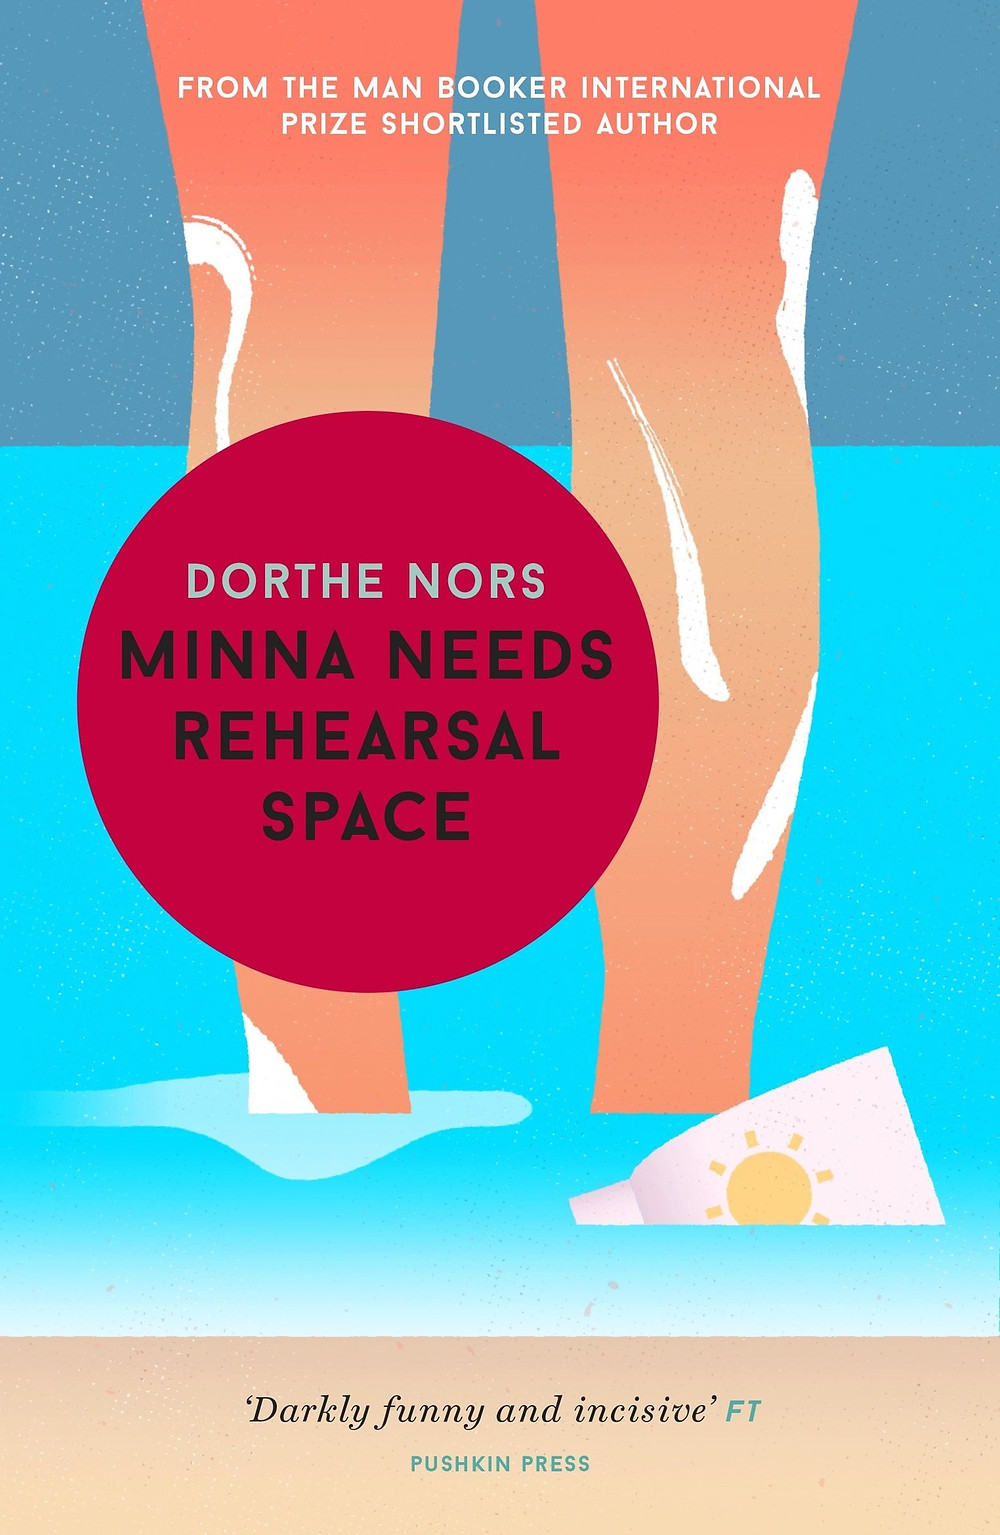 Minna Needs Rehearsal Space by Dorthe Nors : thebookslut book reviews thebookslut Pushkin Press